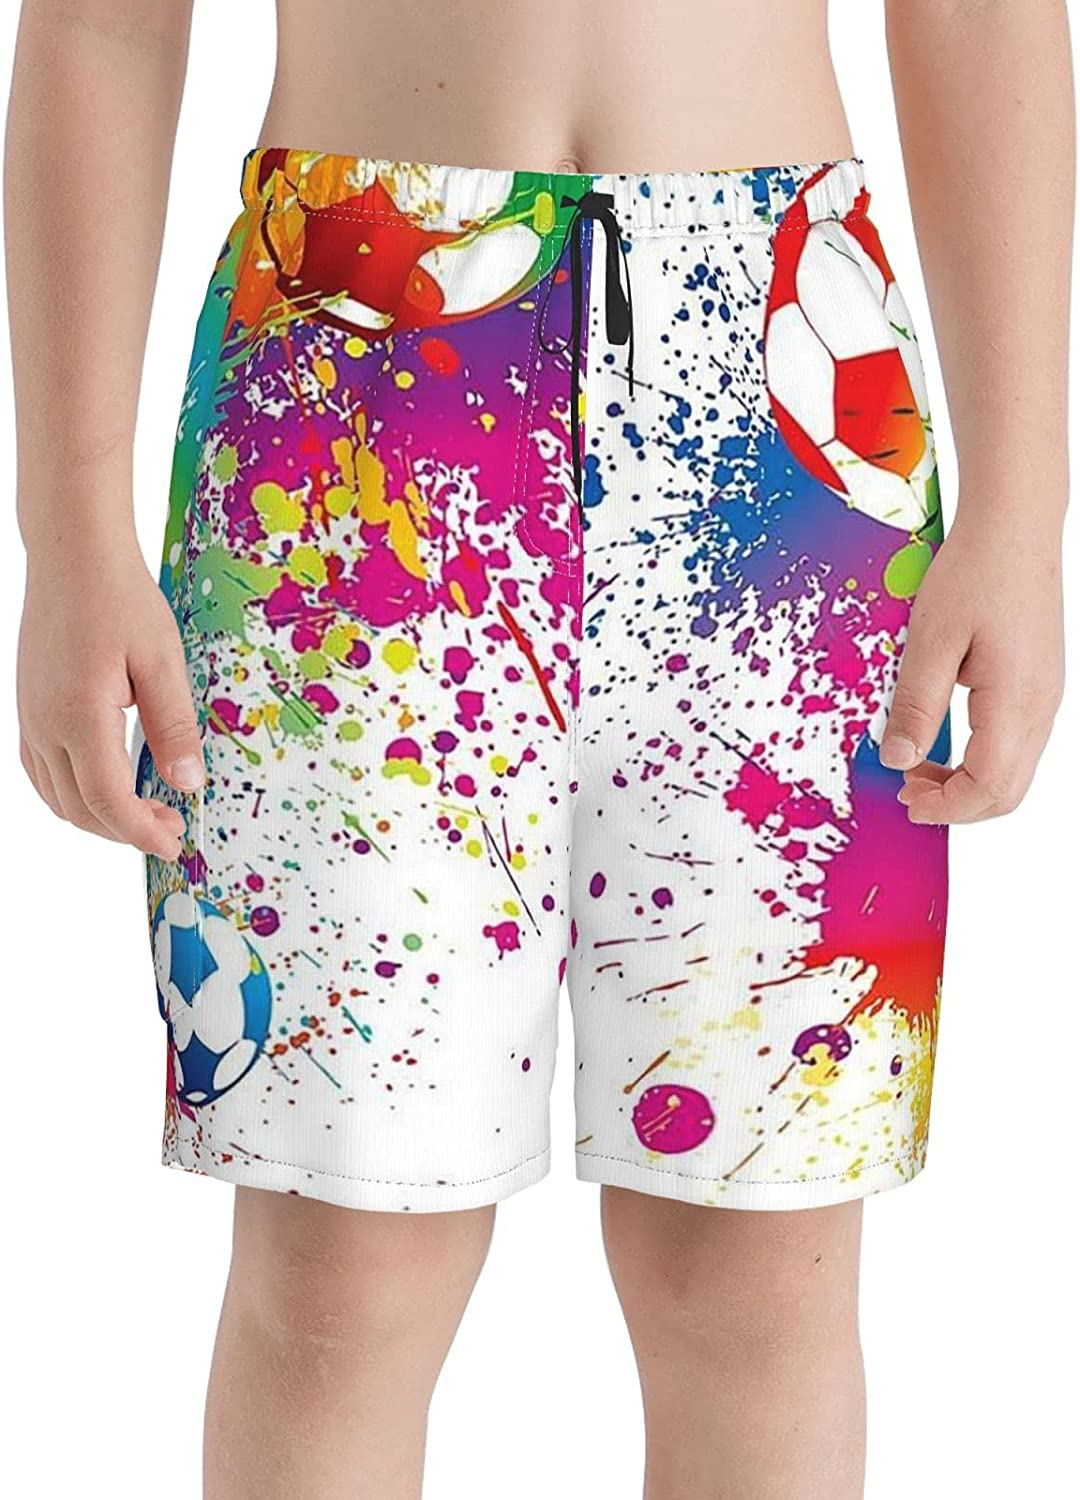 Neddelo Shipping included Soccer Player Boys New products, world's highest quality popular! Swim Trunks Beach Teens Boardshorts